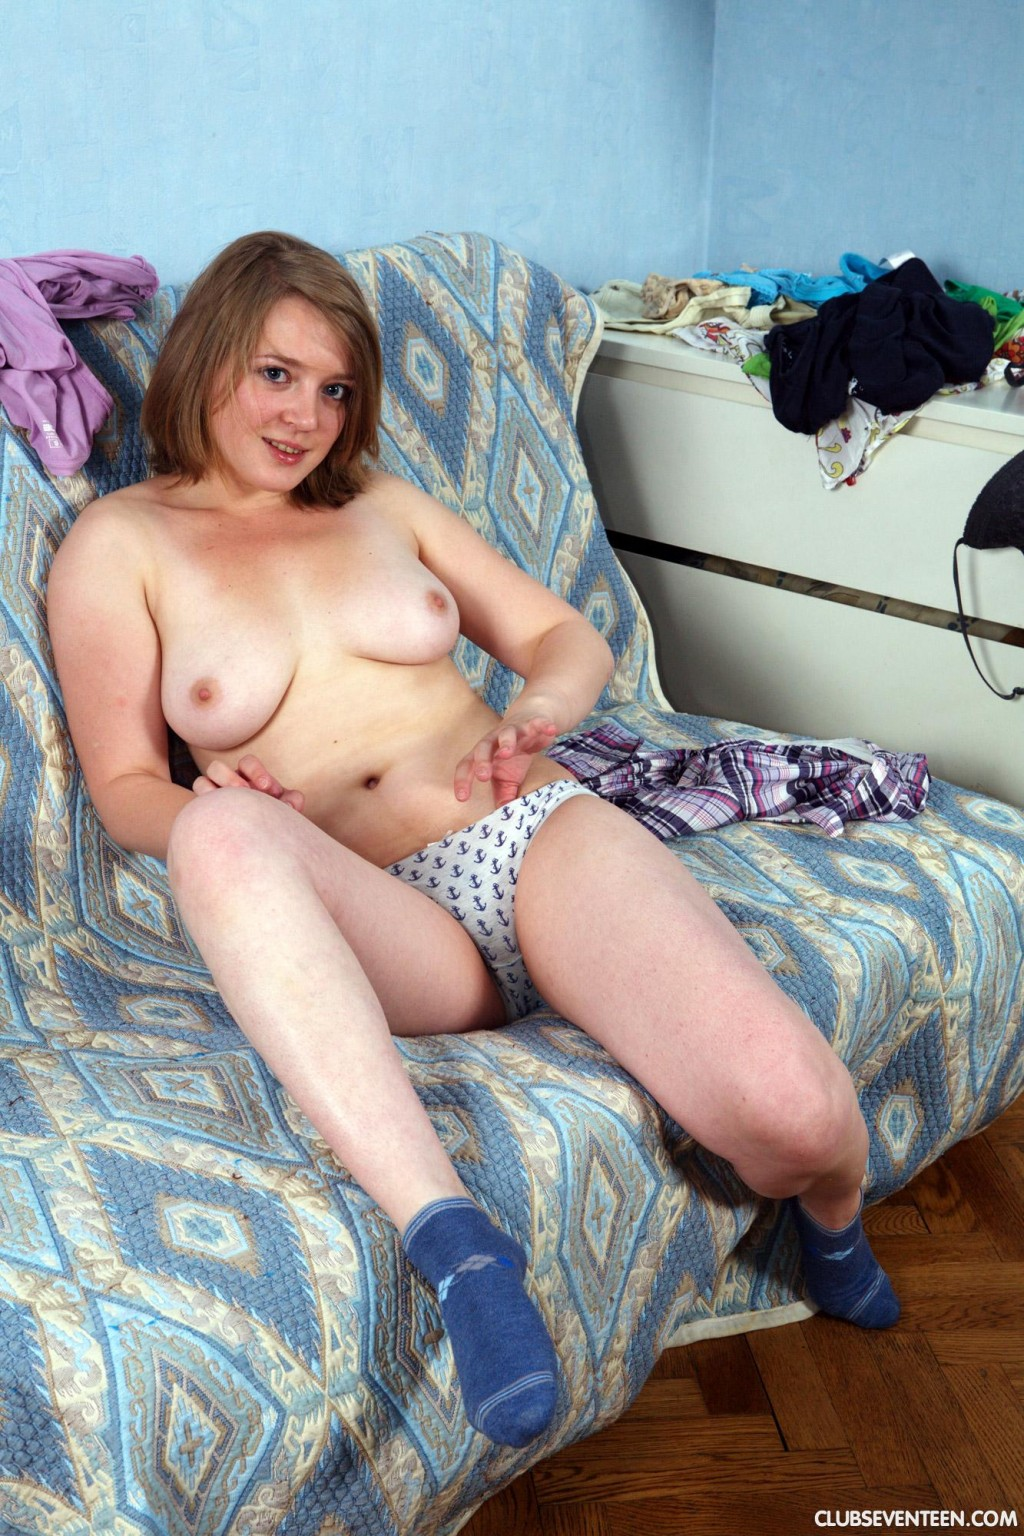 from Blaise young country girls pussy